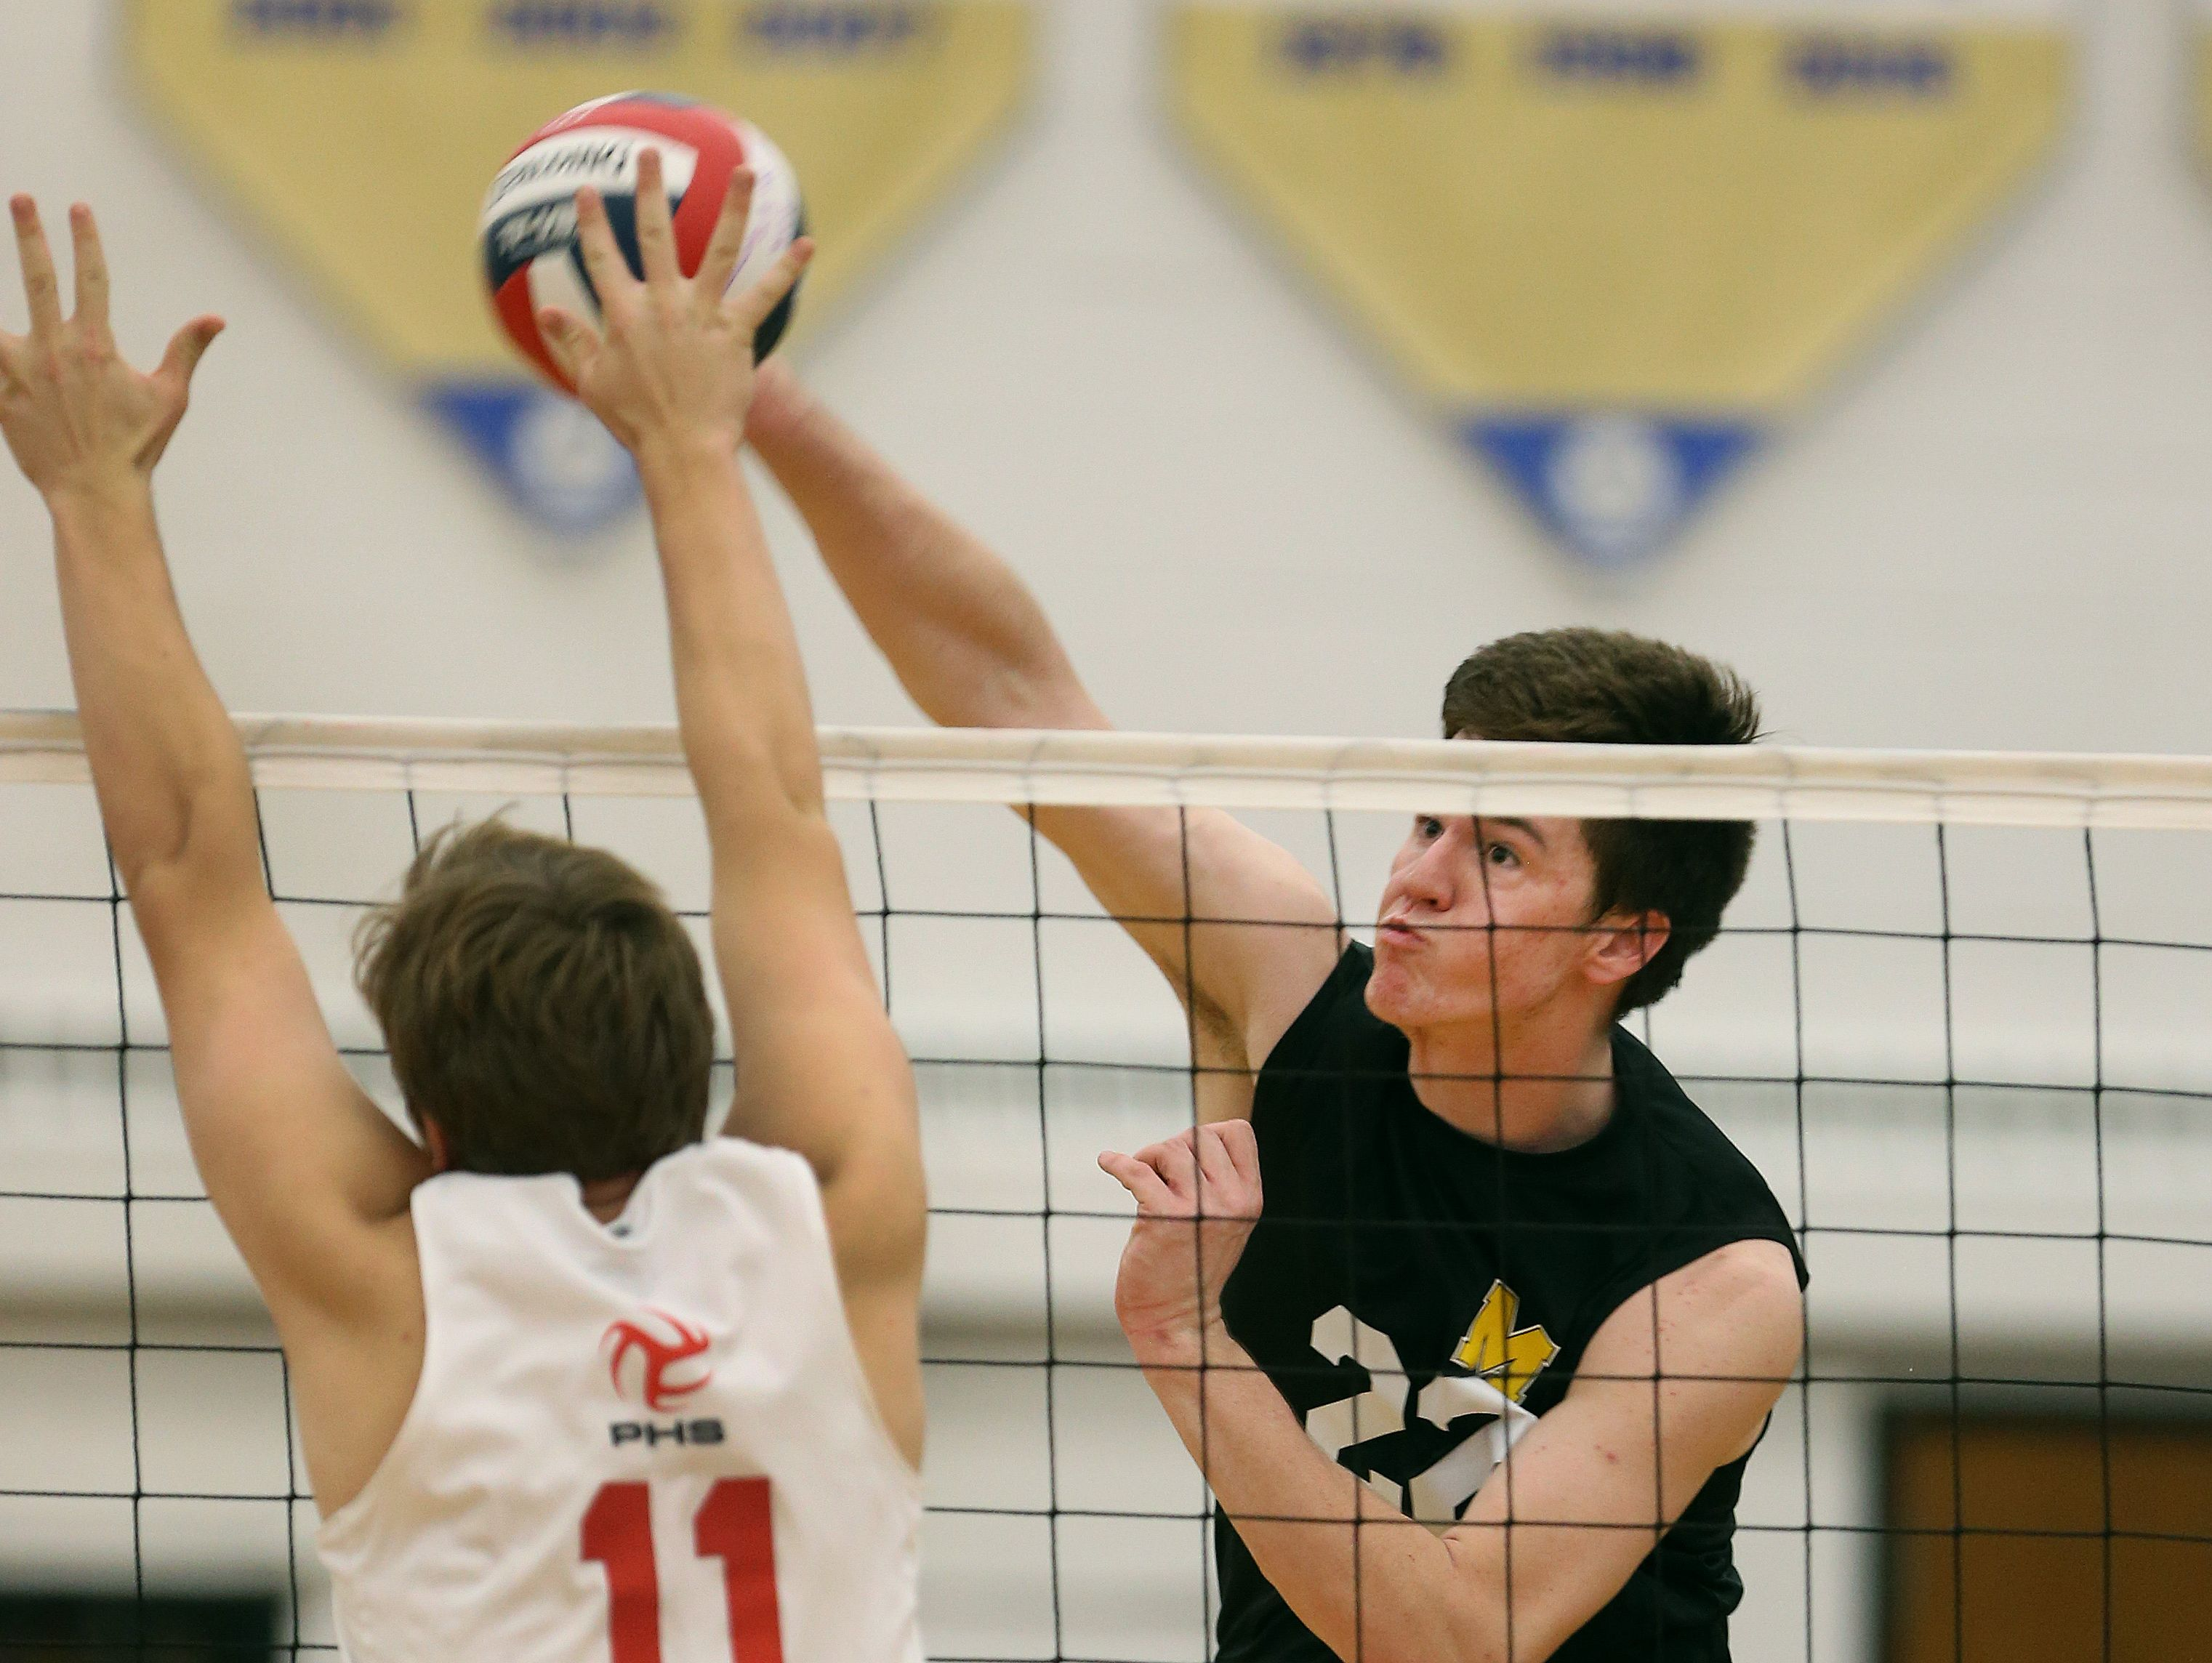 McQuaid's Ryan Dorgan goes up against Penfield's Jack Burke in Class A final.